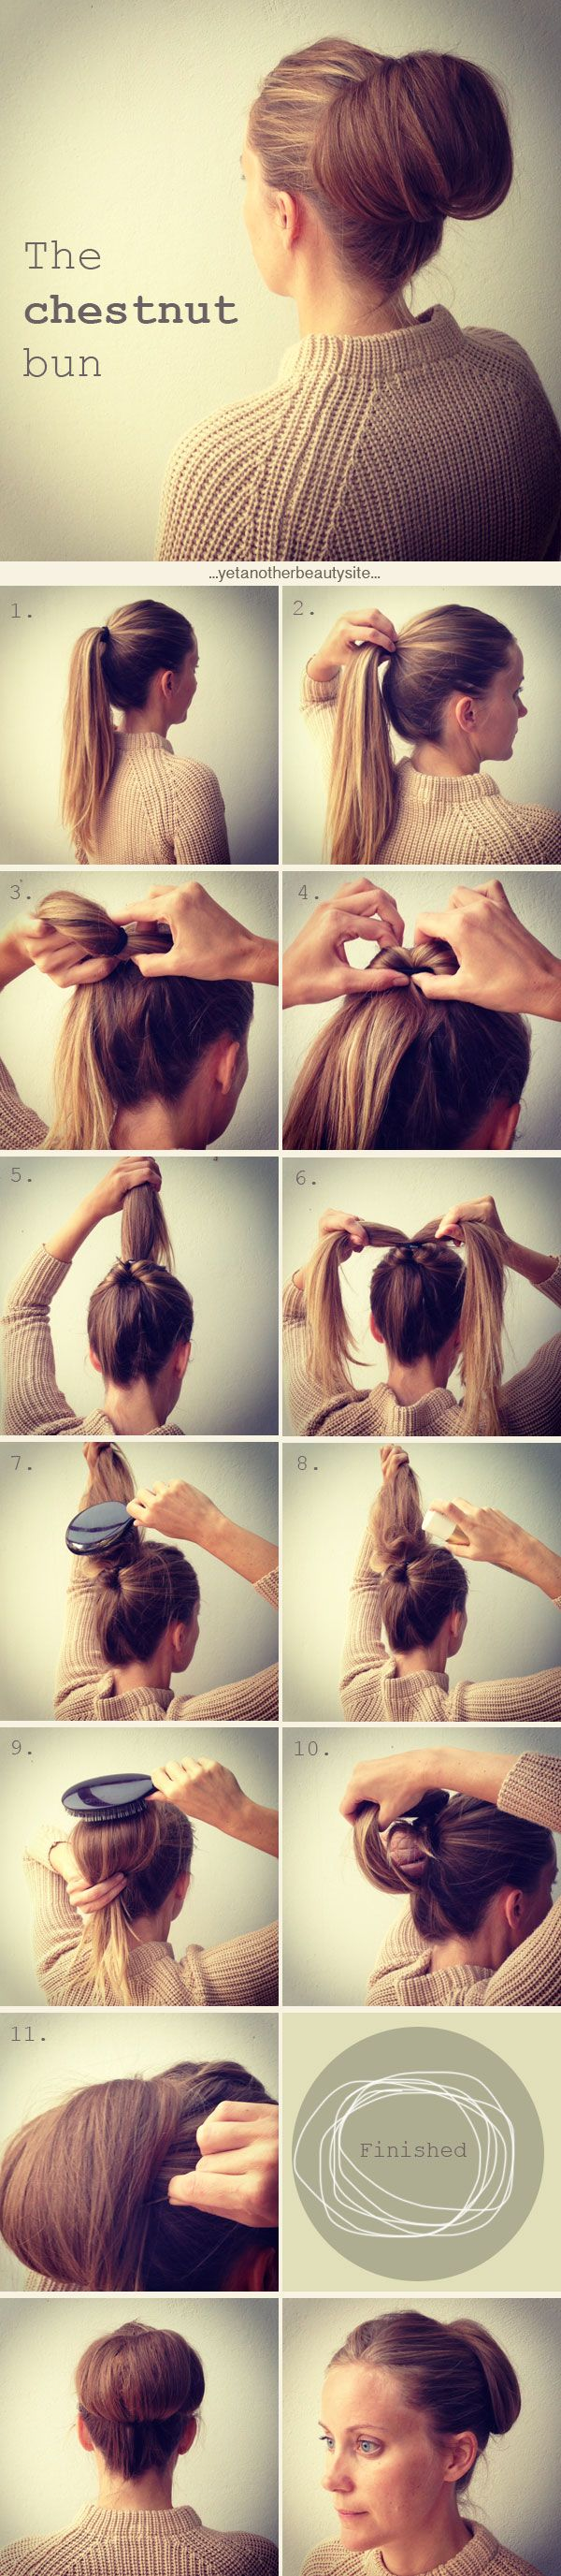 Pretty bun tutorial from the lovely @Yet another beauty site!